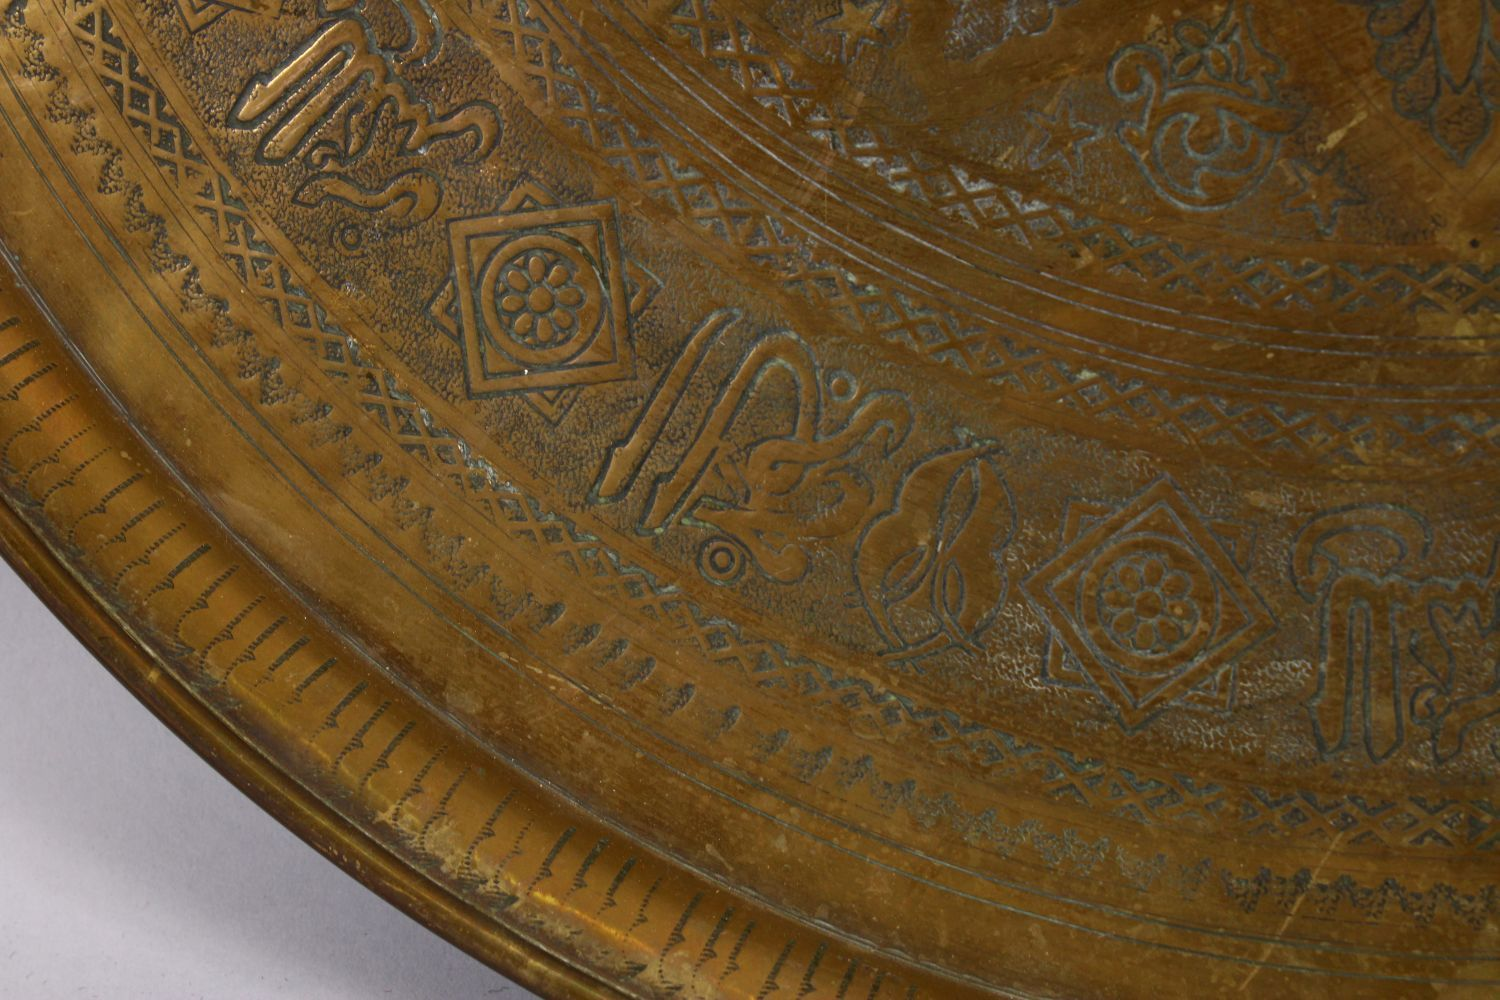 A LARGE 19TH CENTURY EGYPTIAN BRASS CHARGER / TRAY, with carved bands of calligraphy and motif - Image 5 of 7